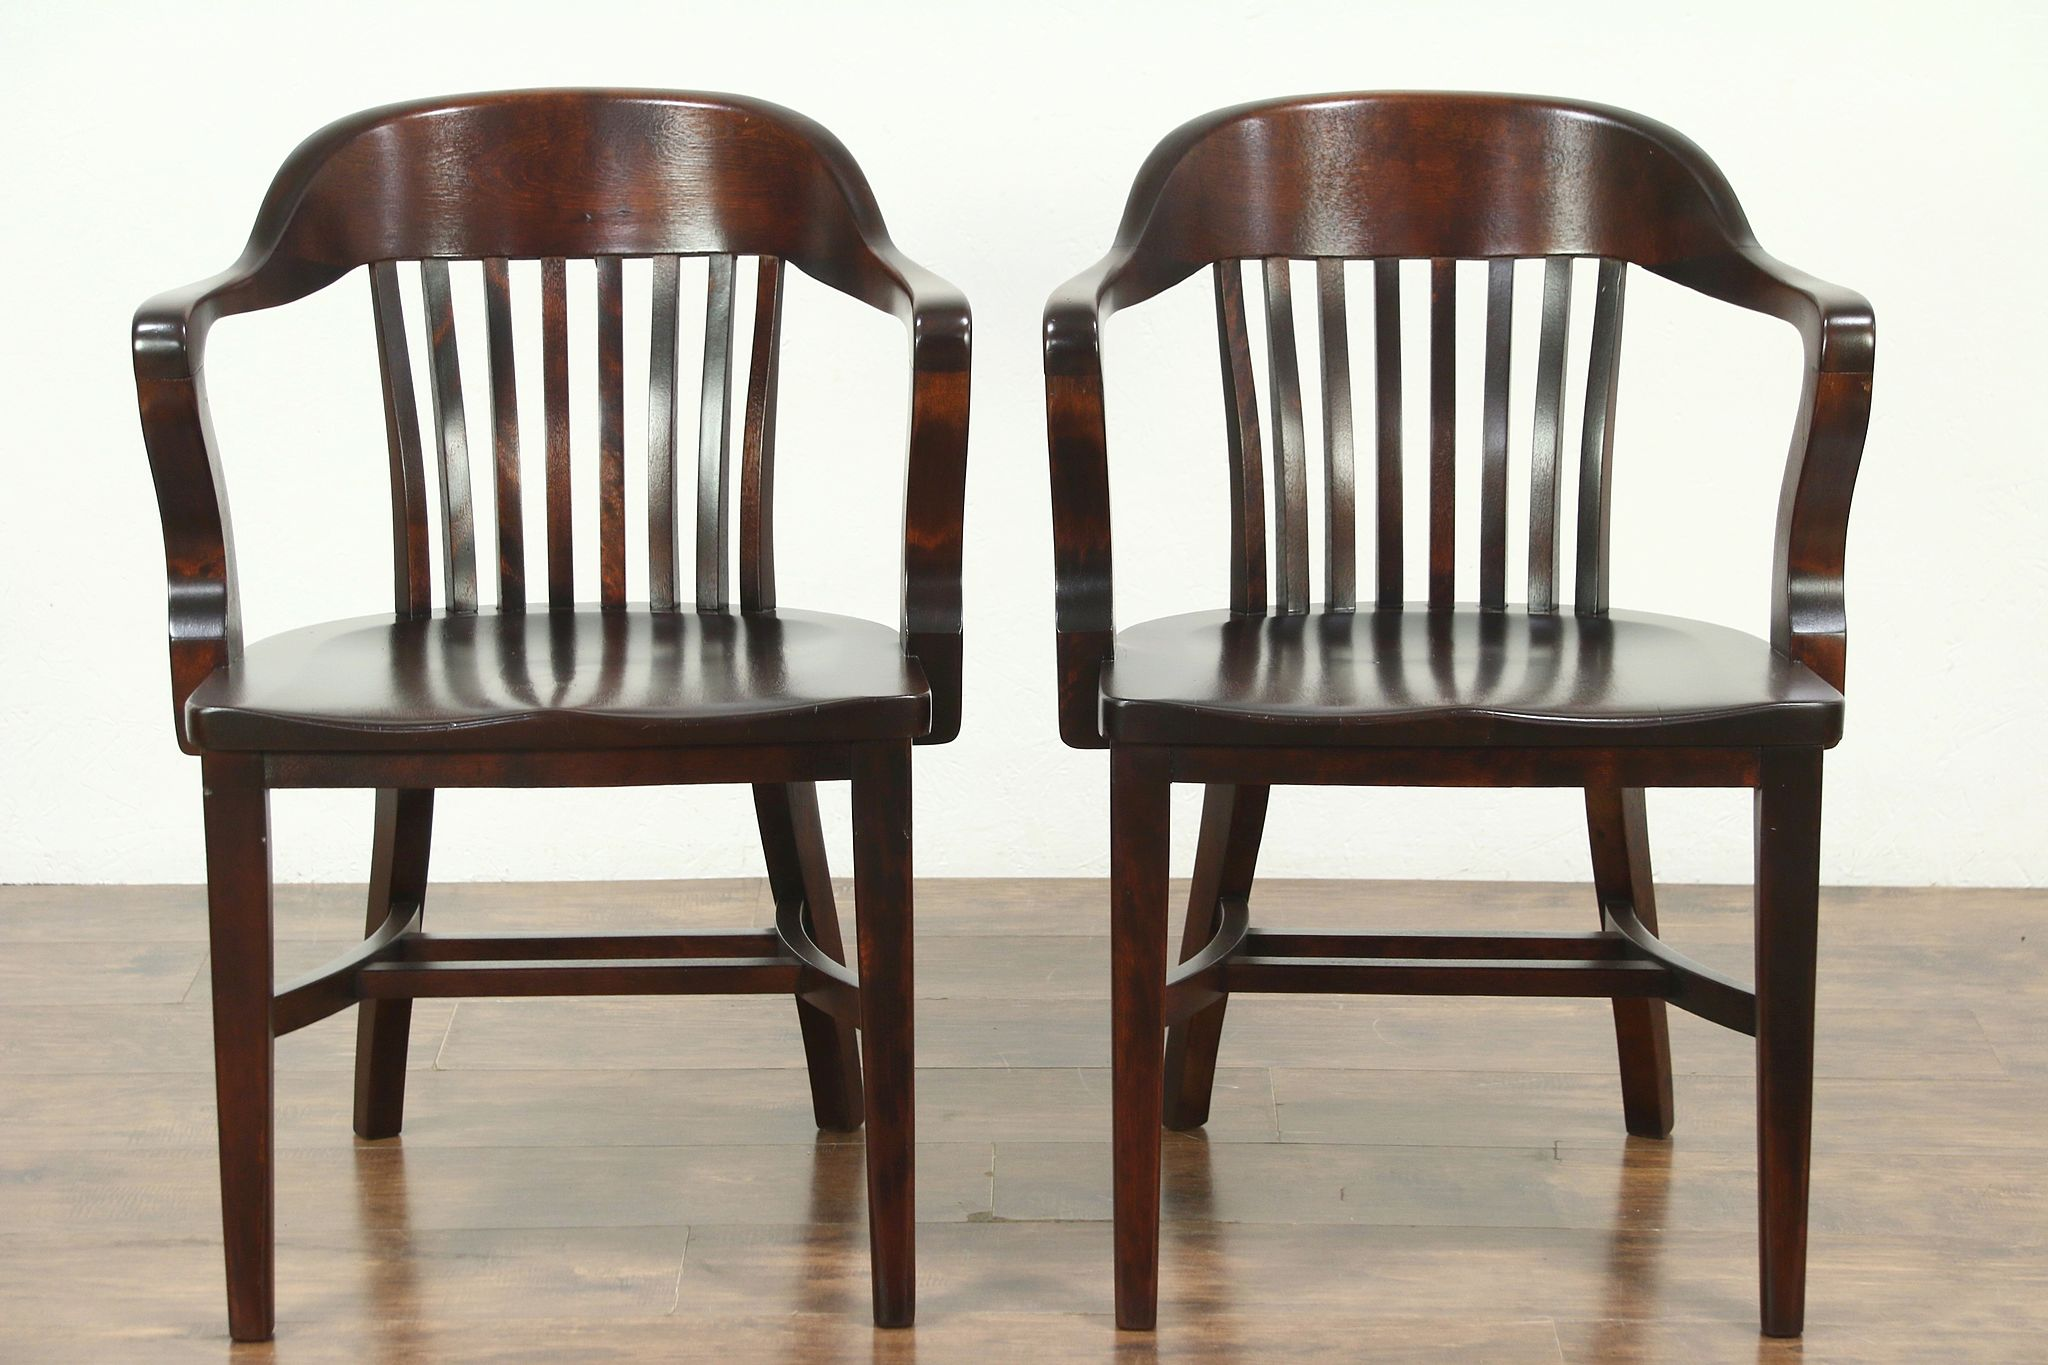 Sold pair antique banker library or office chairs mahogany finish 28812 harp gallery